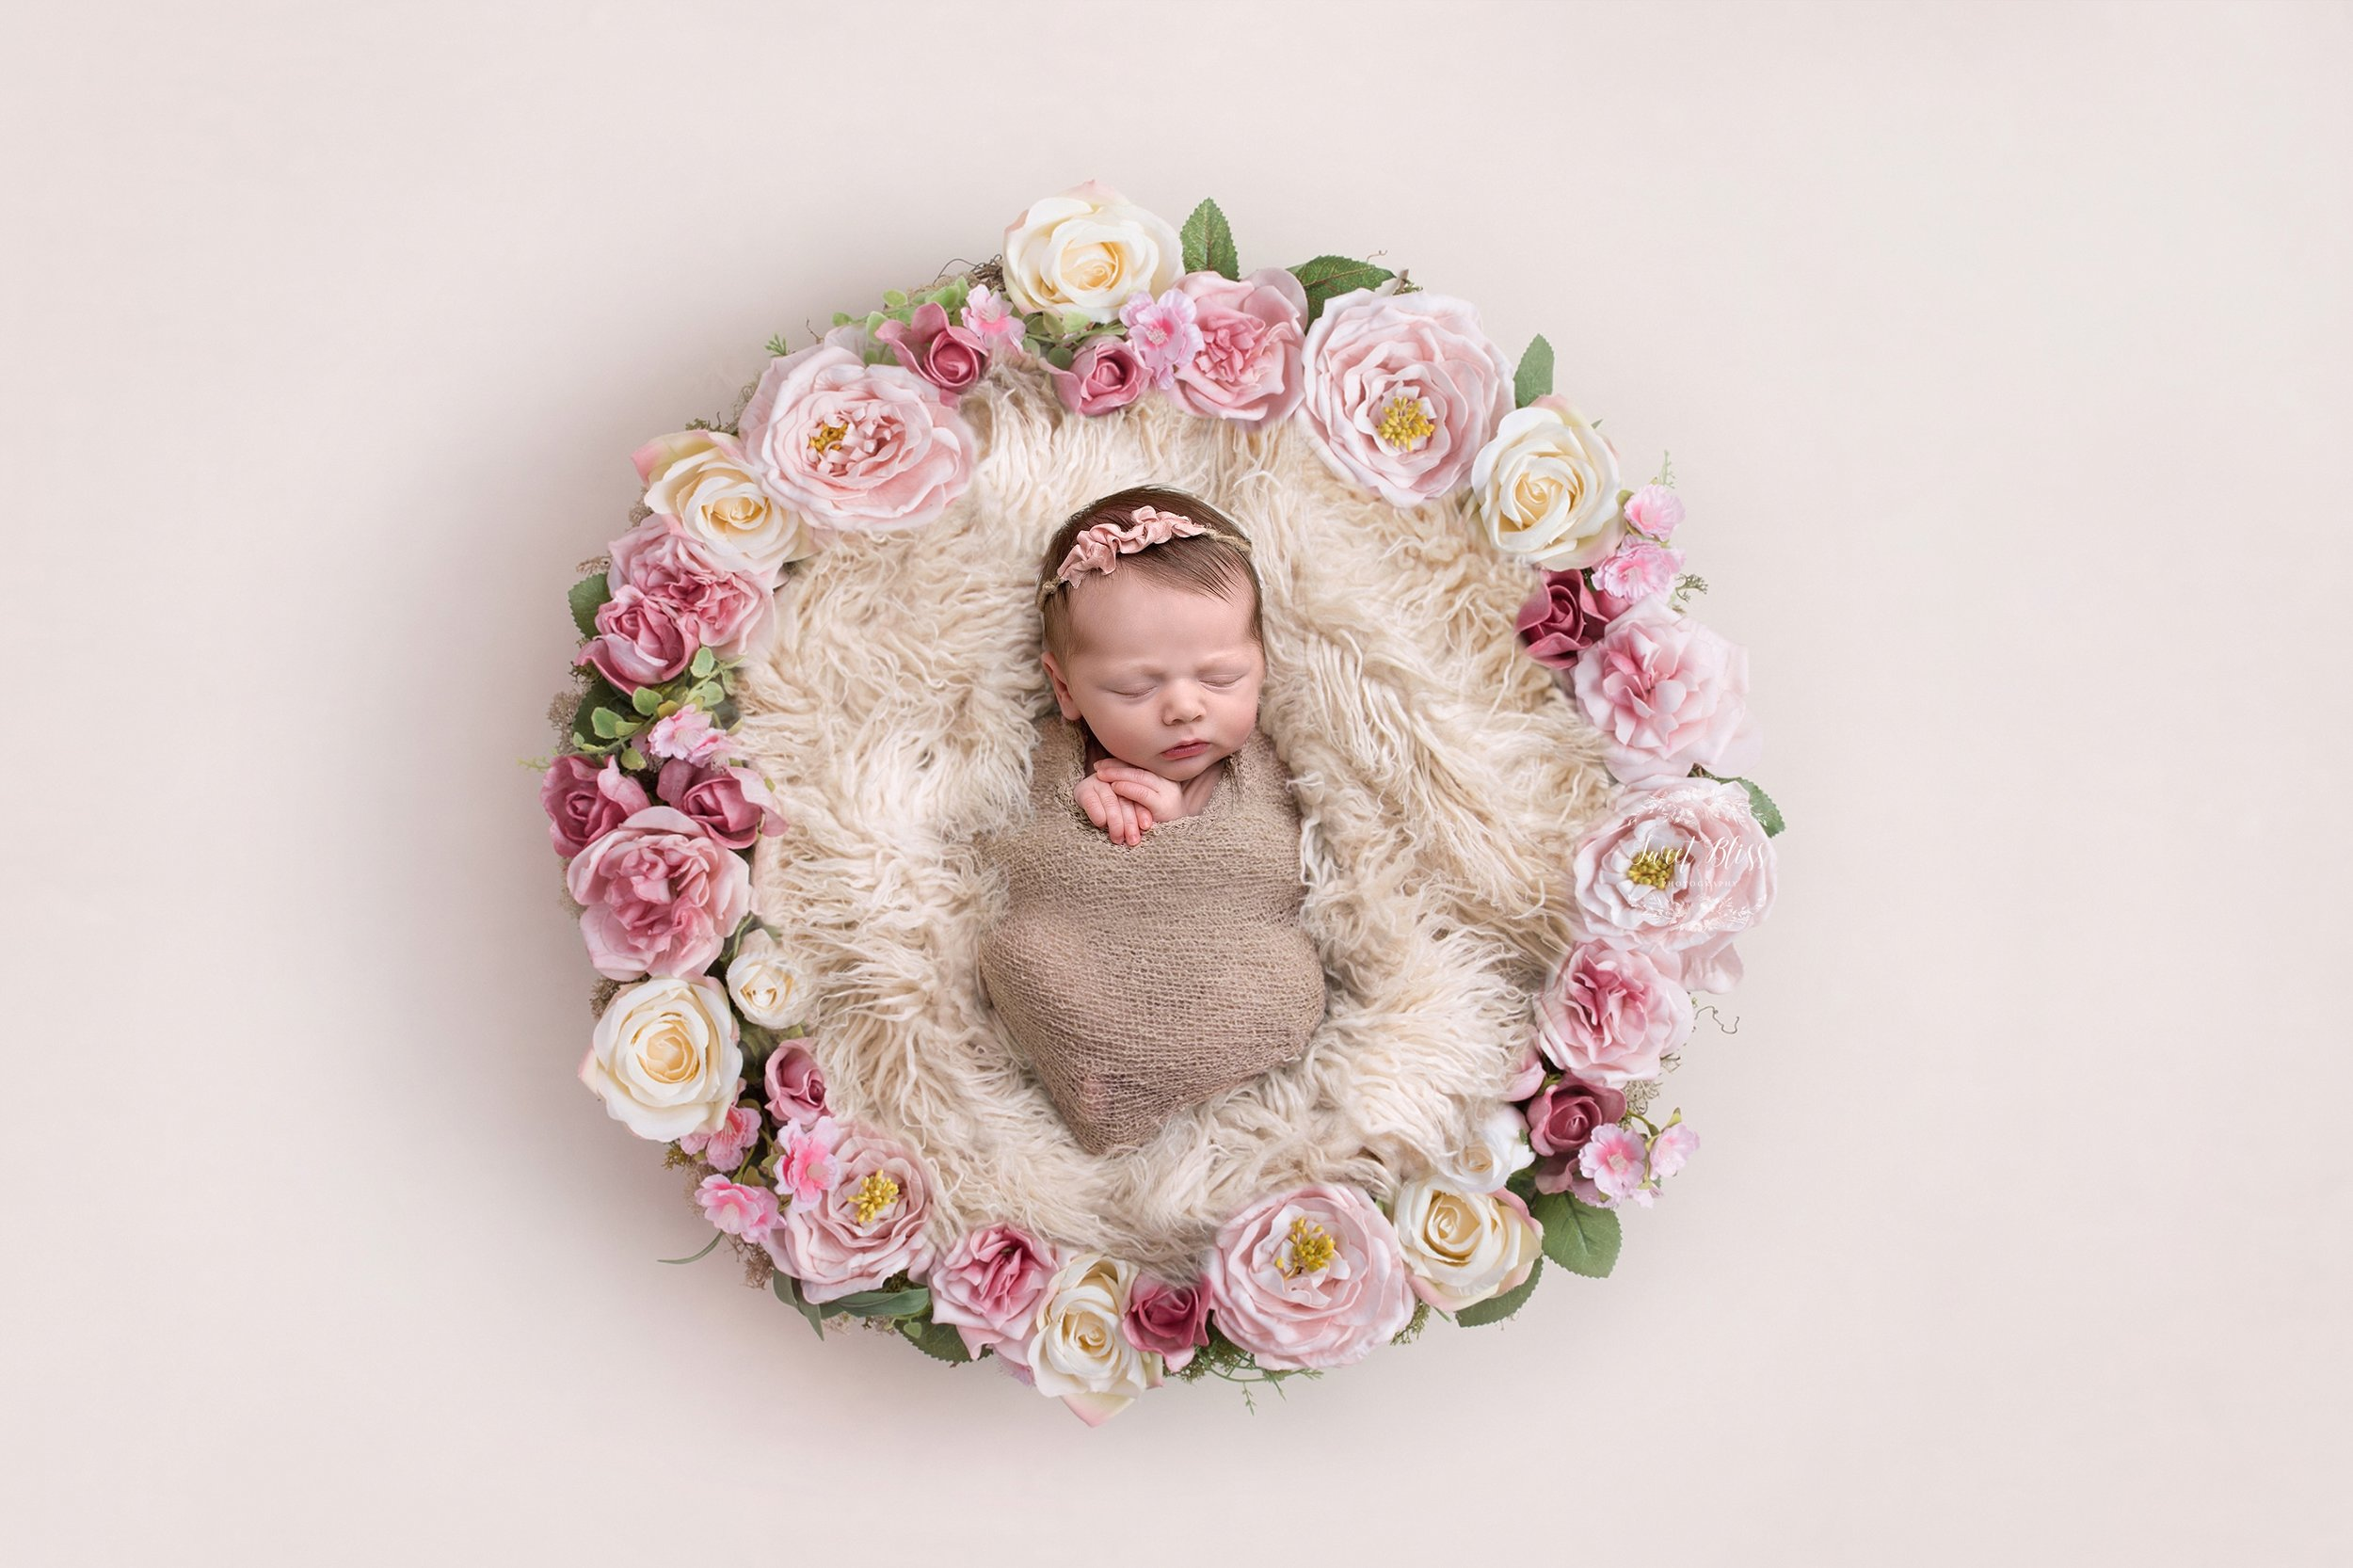 Harfordcountynewbornphotography_Marylandnewbornbaby.jpg